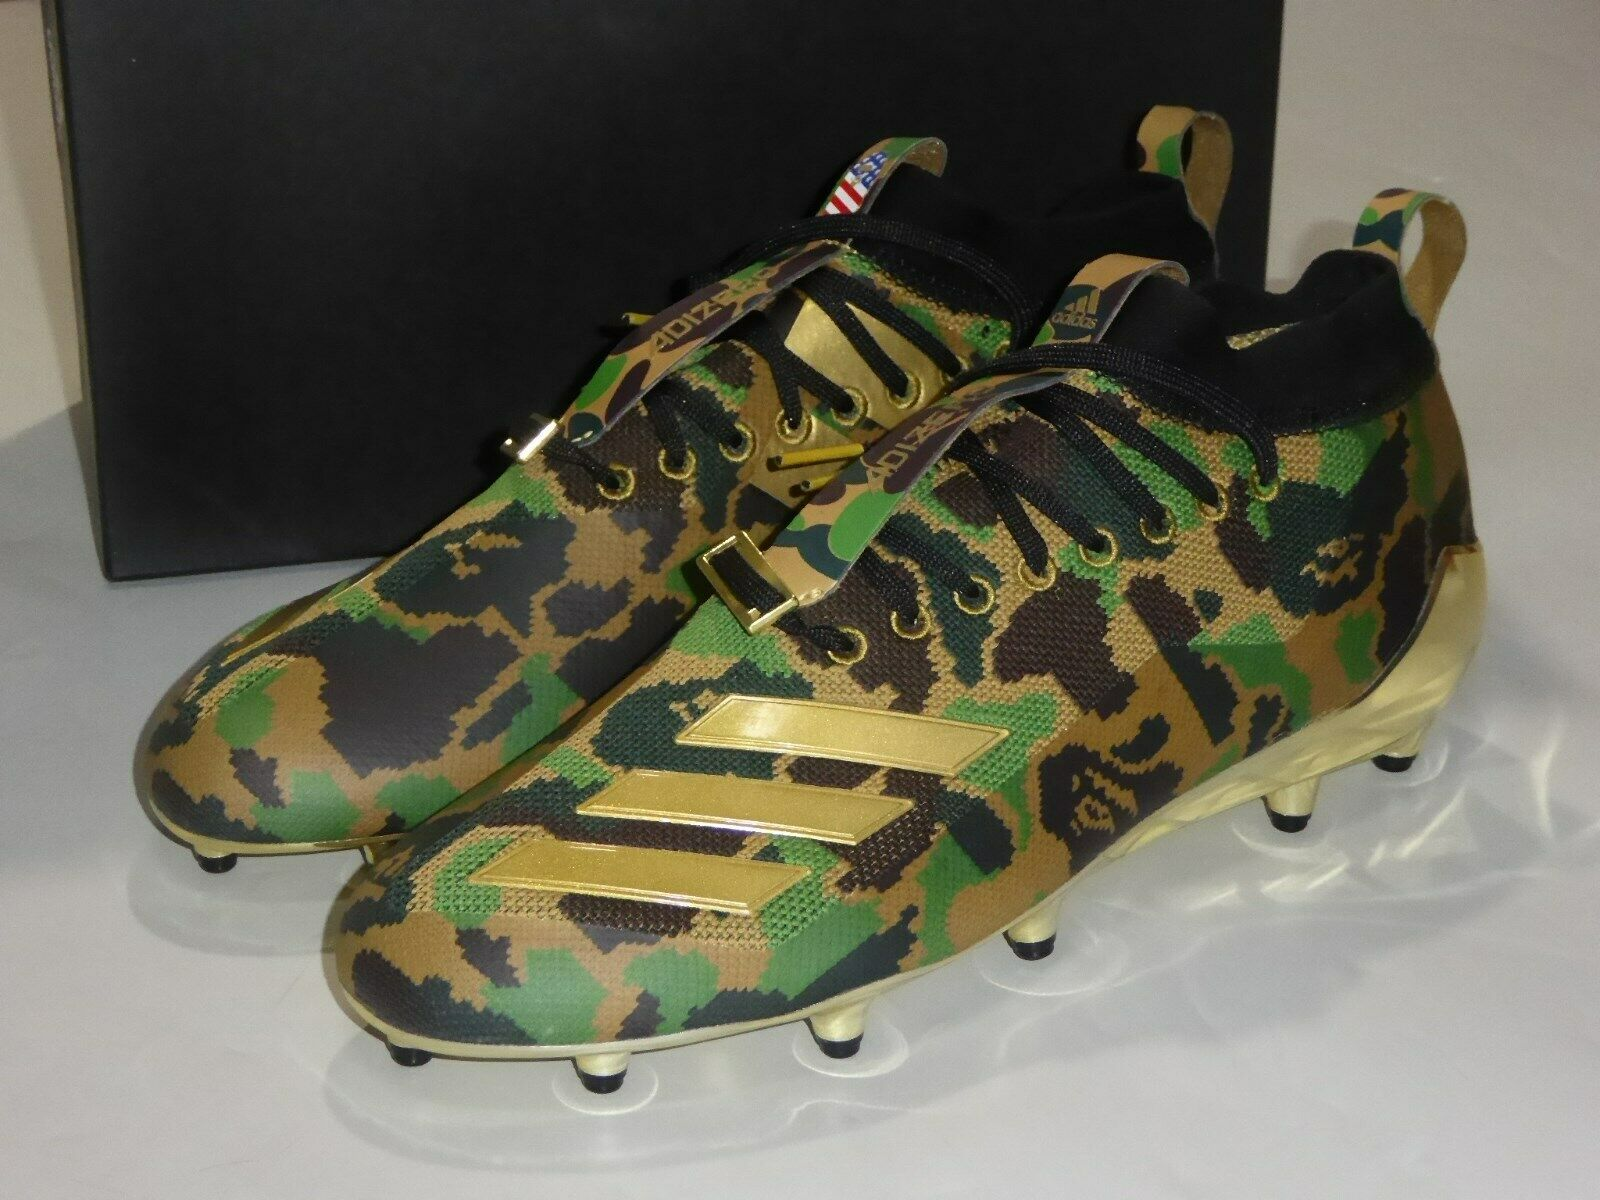 19878 adidas x bape football cleats bape green US11